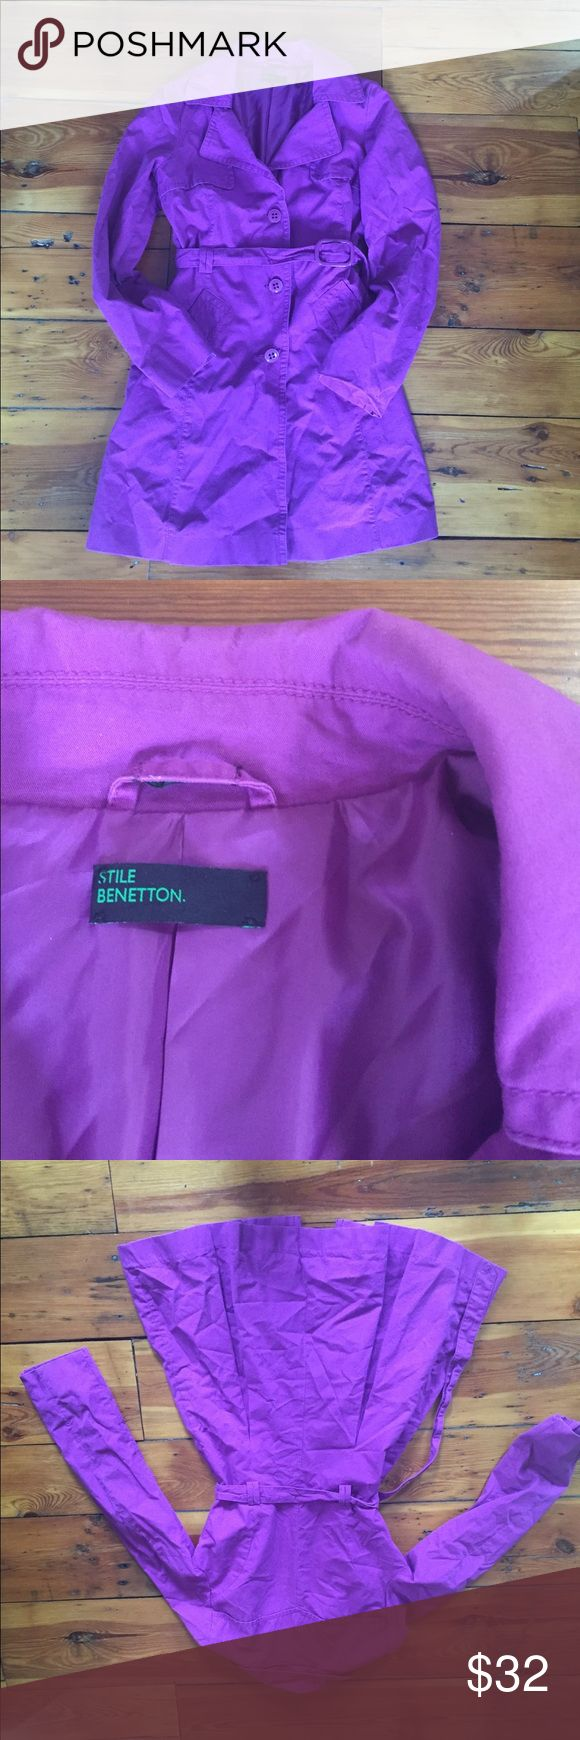 The cutest purple trench coat! Beautiful button up and tie-waist purple trench coat. Pleats in the back. Size 40. Fits like a size small. Exterior is 100% cotton. Interior is 100% polyester. Jackets & Coats Trench Coats